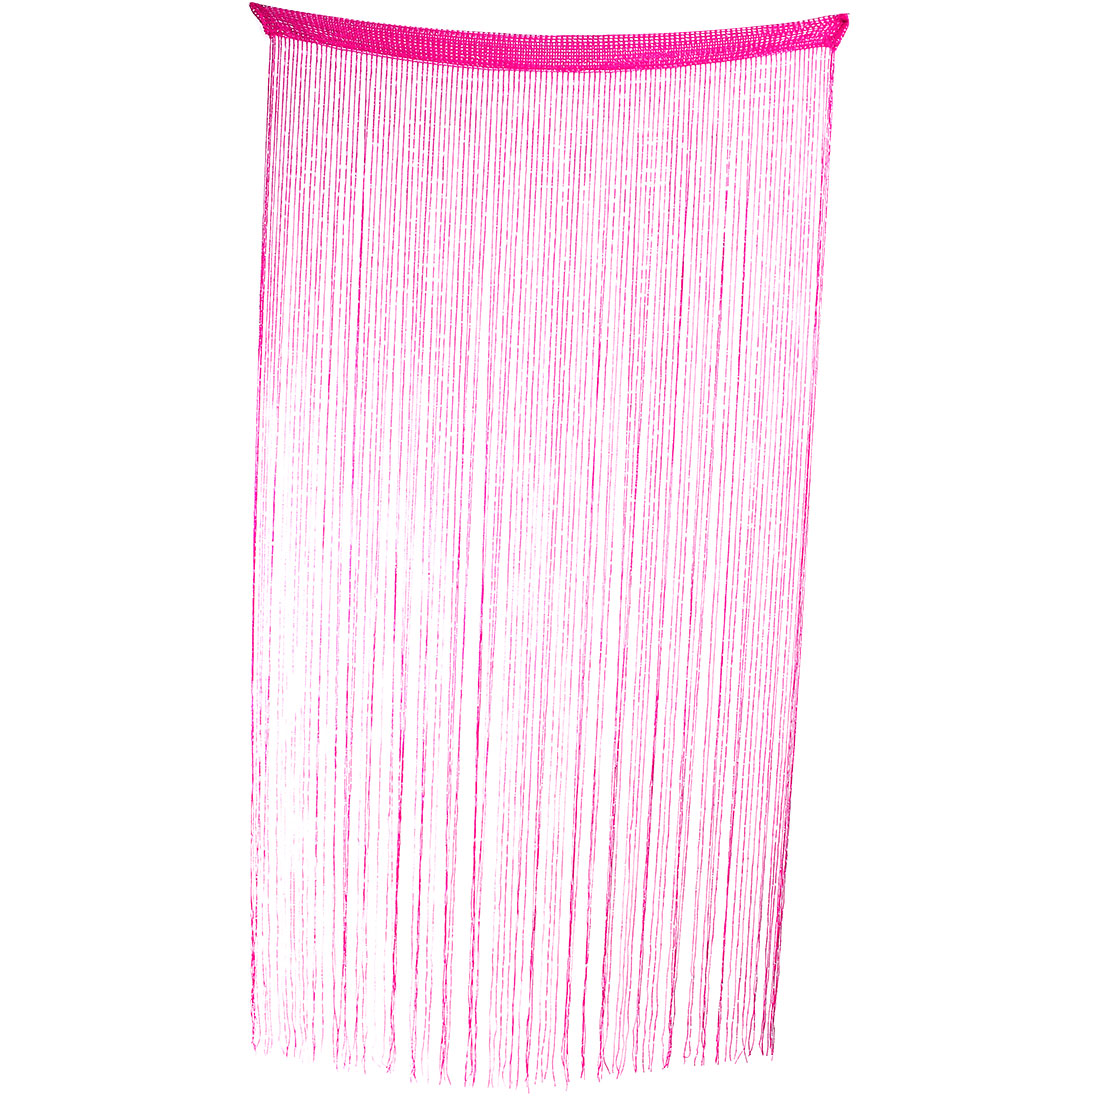 Household Yarn Weaving Tassels Design String Line Decor Window Curtain Fuchsia 2m High